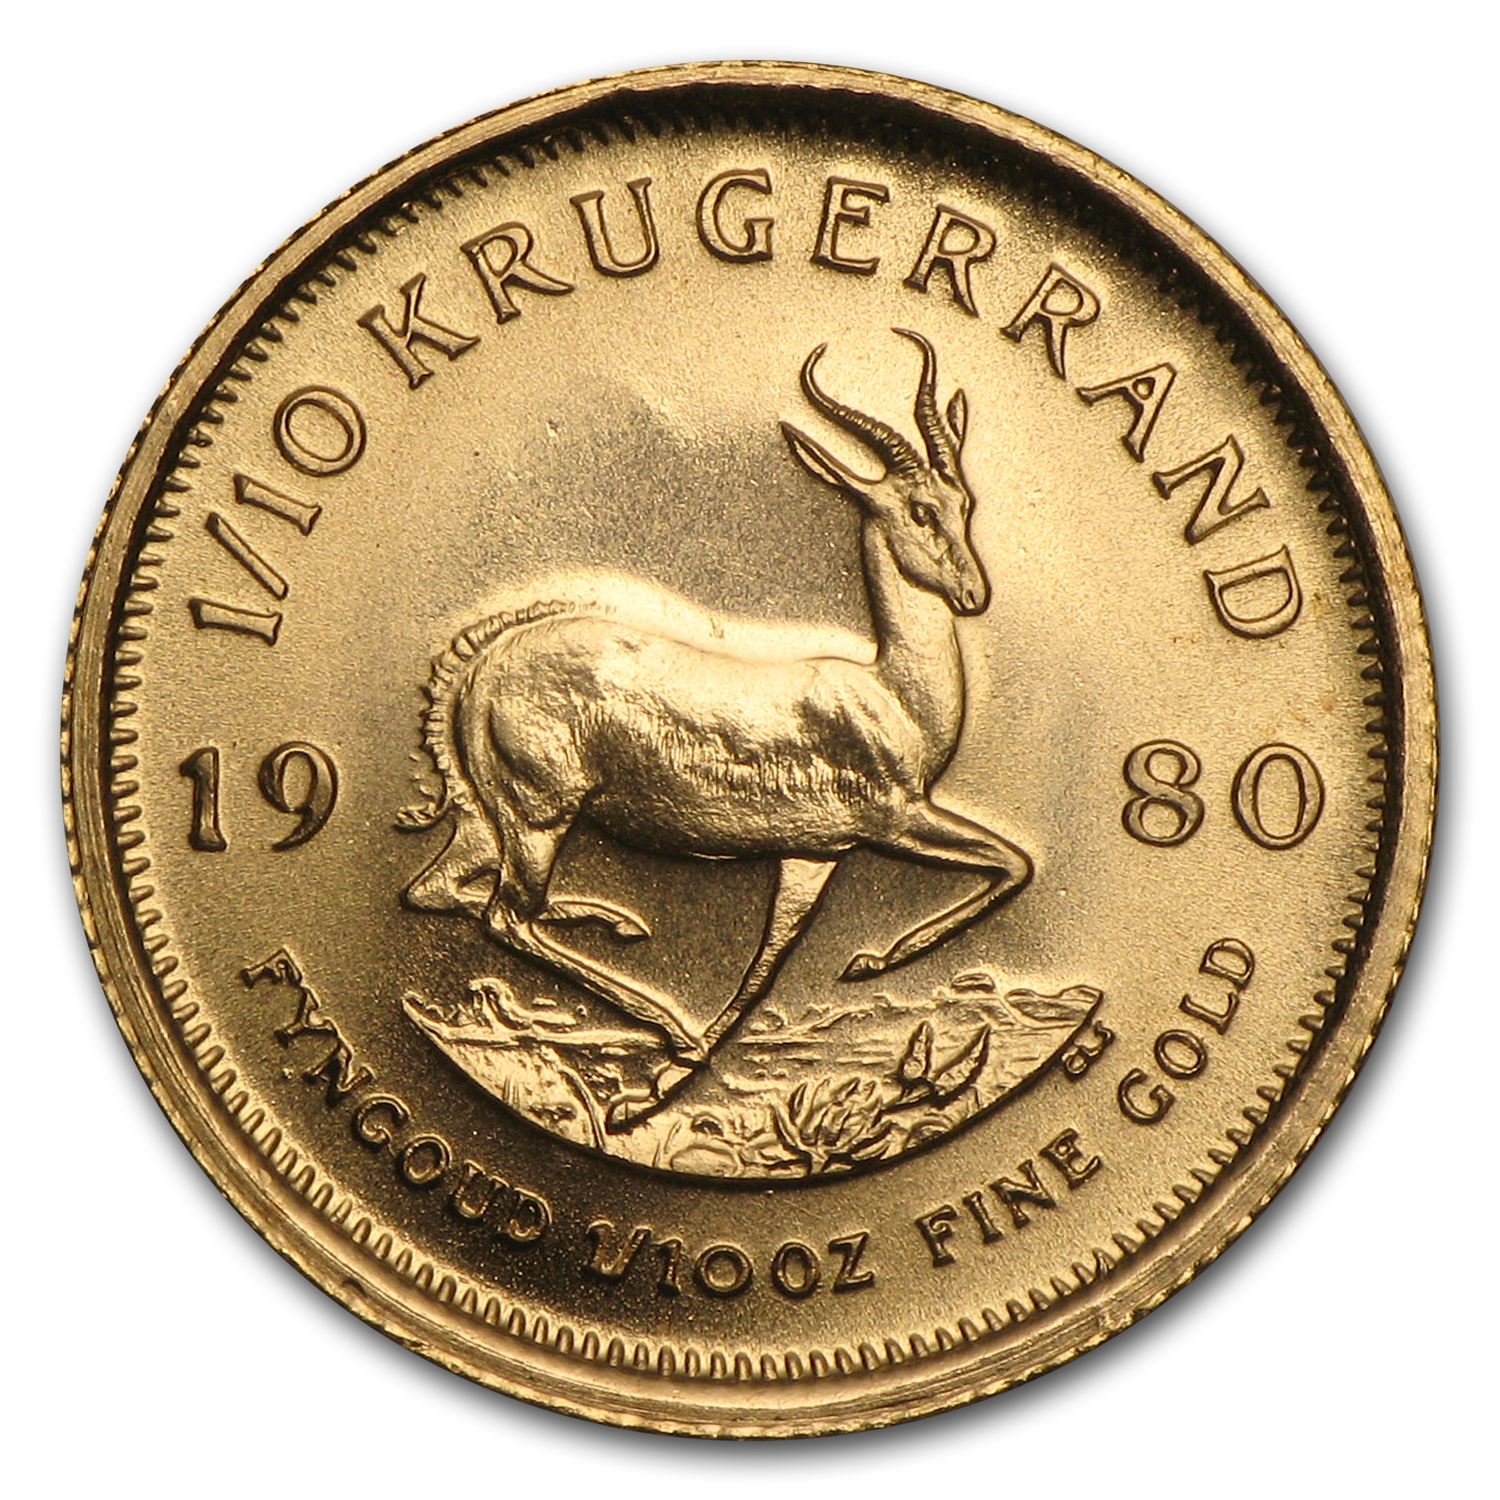 1980 South Africa 1/10 oz Gold Krugerrand